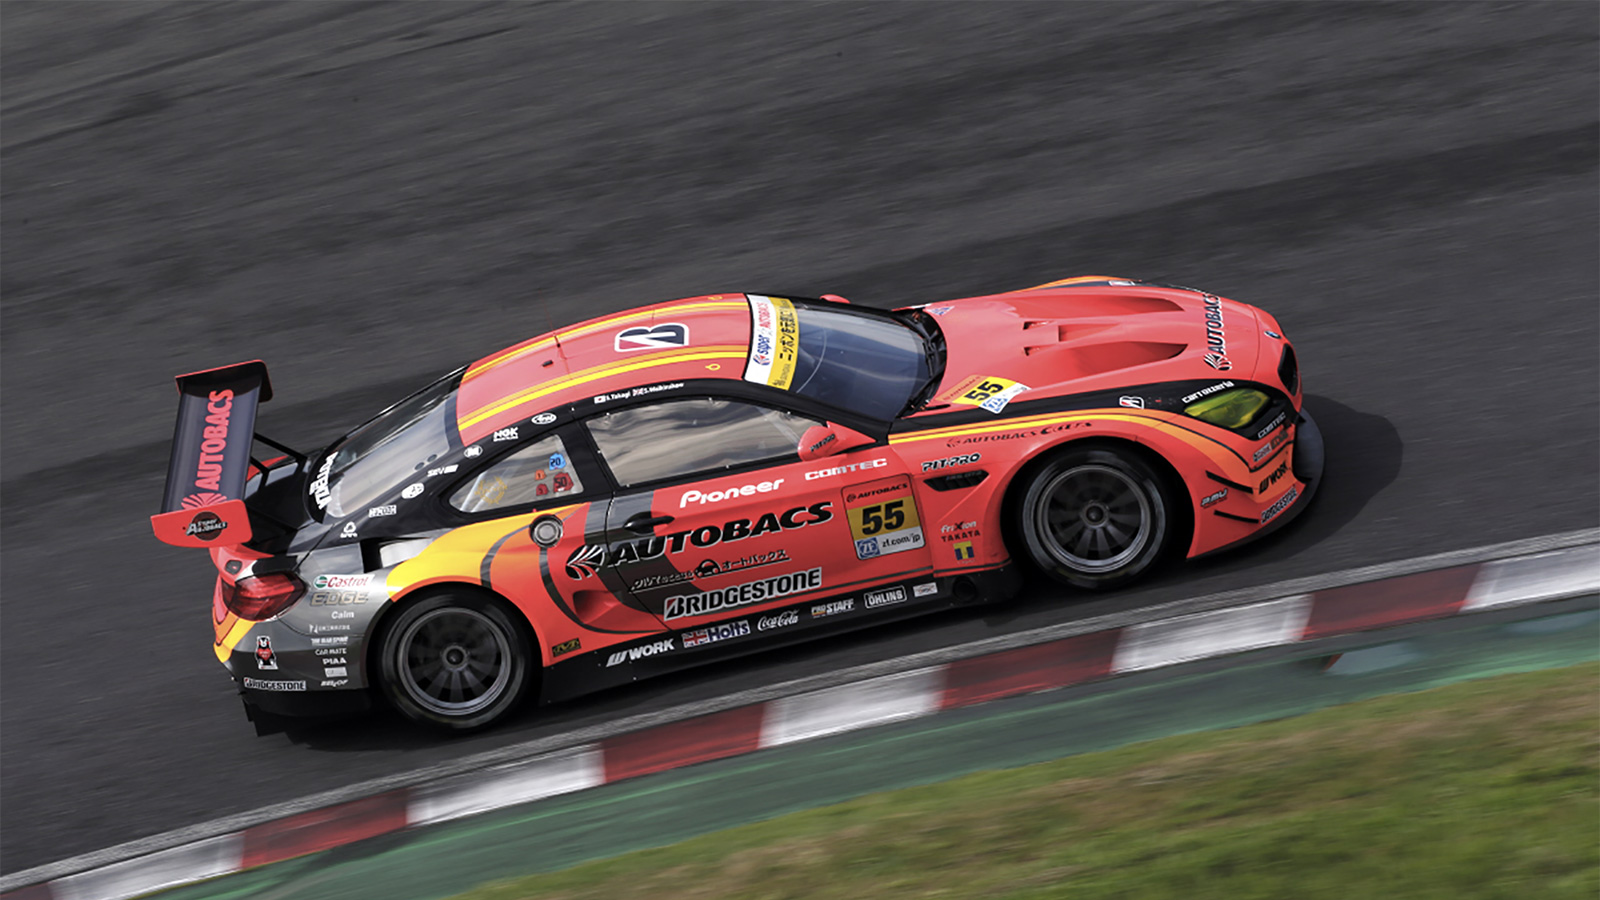 Dramatic early end to Suzuka 1000km for Walkinshaw and Takagi.